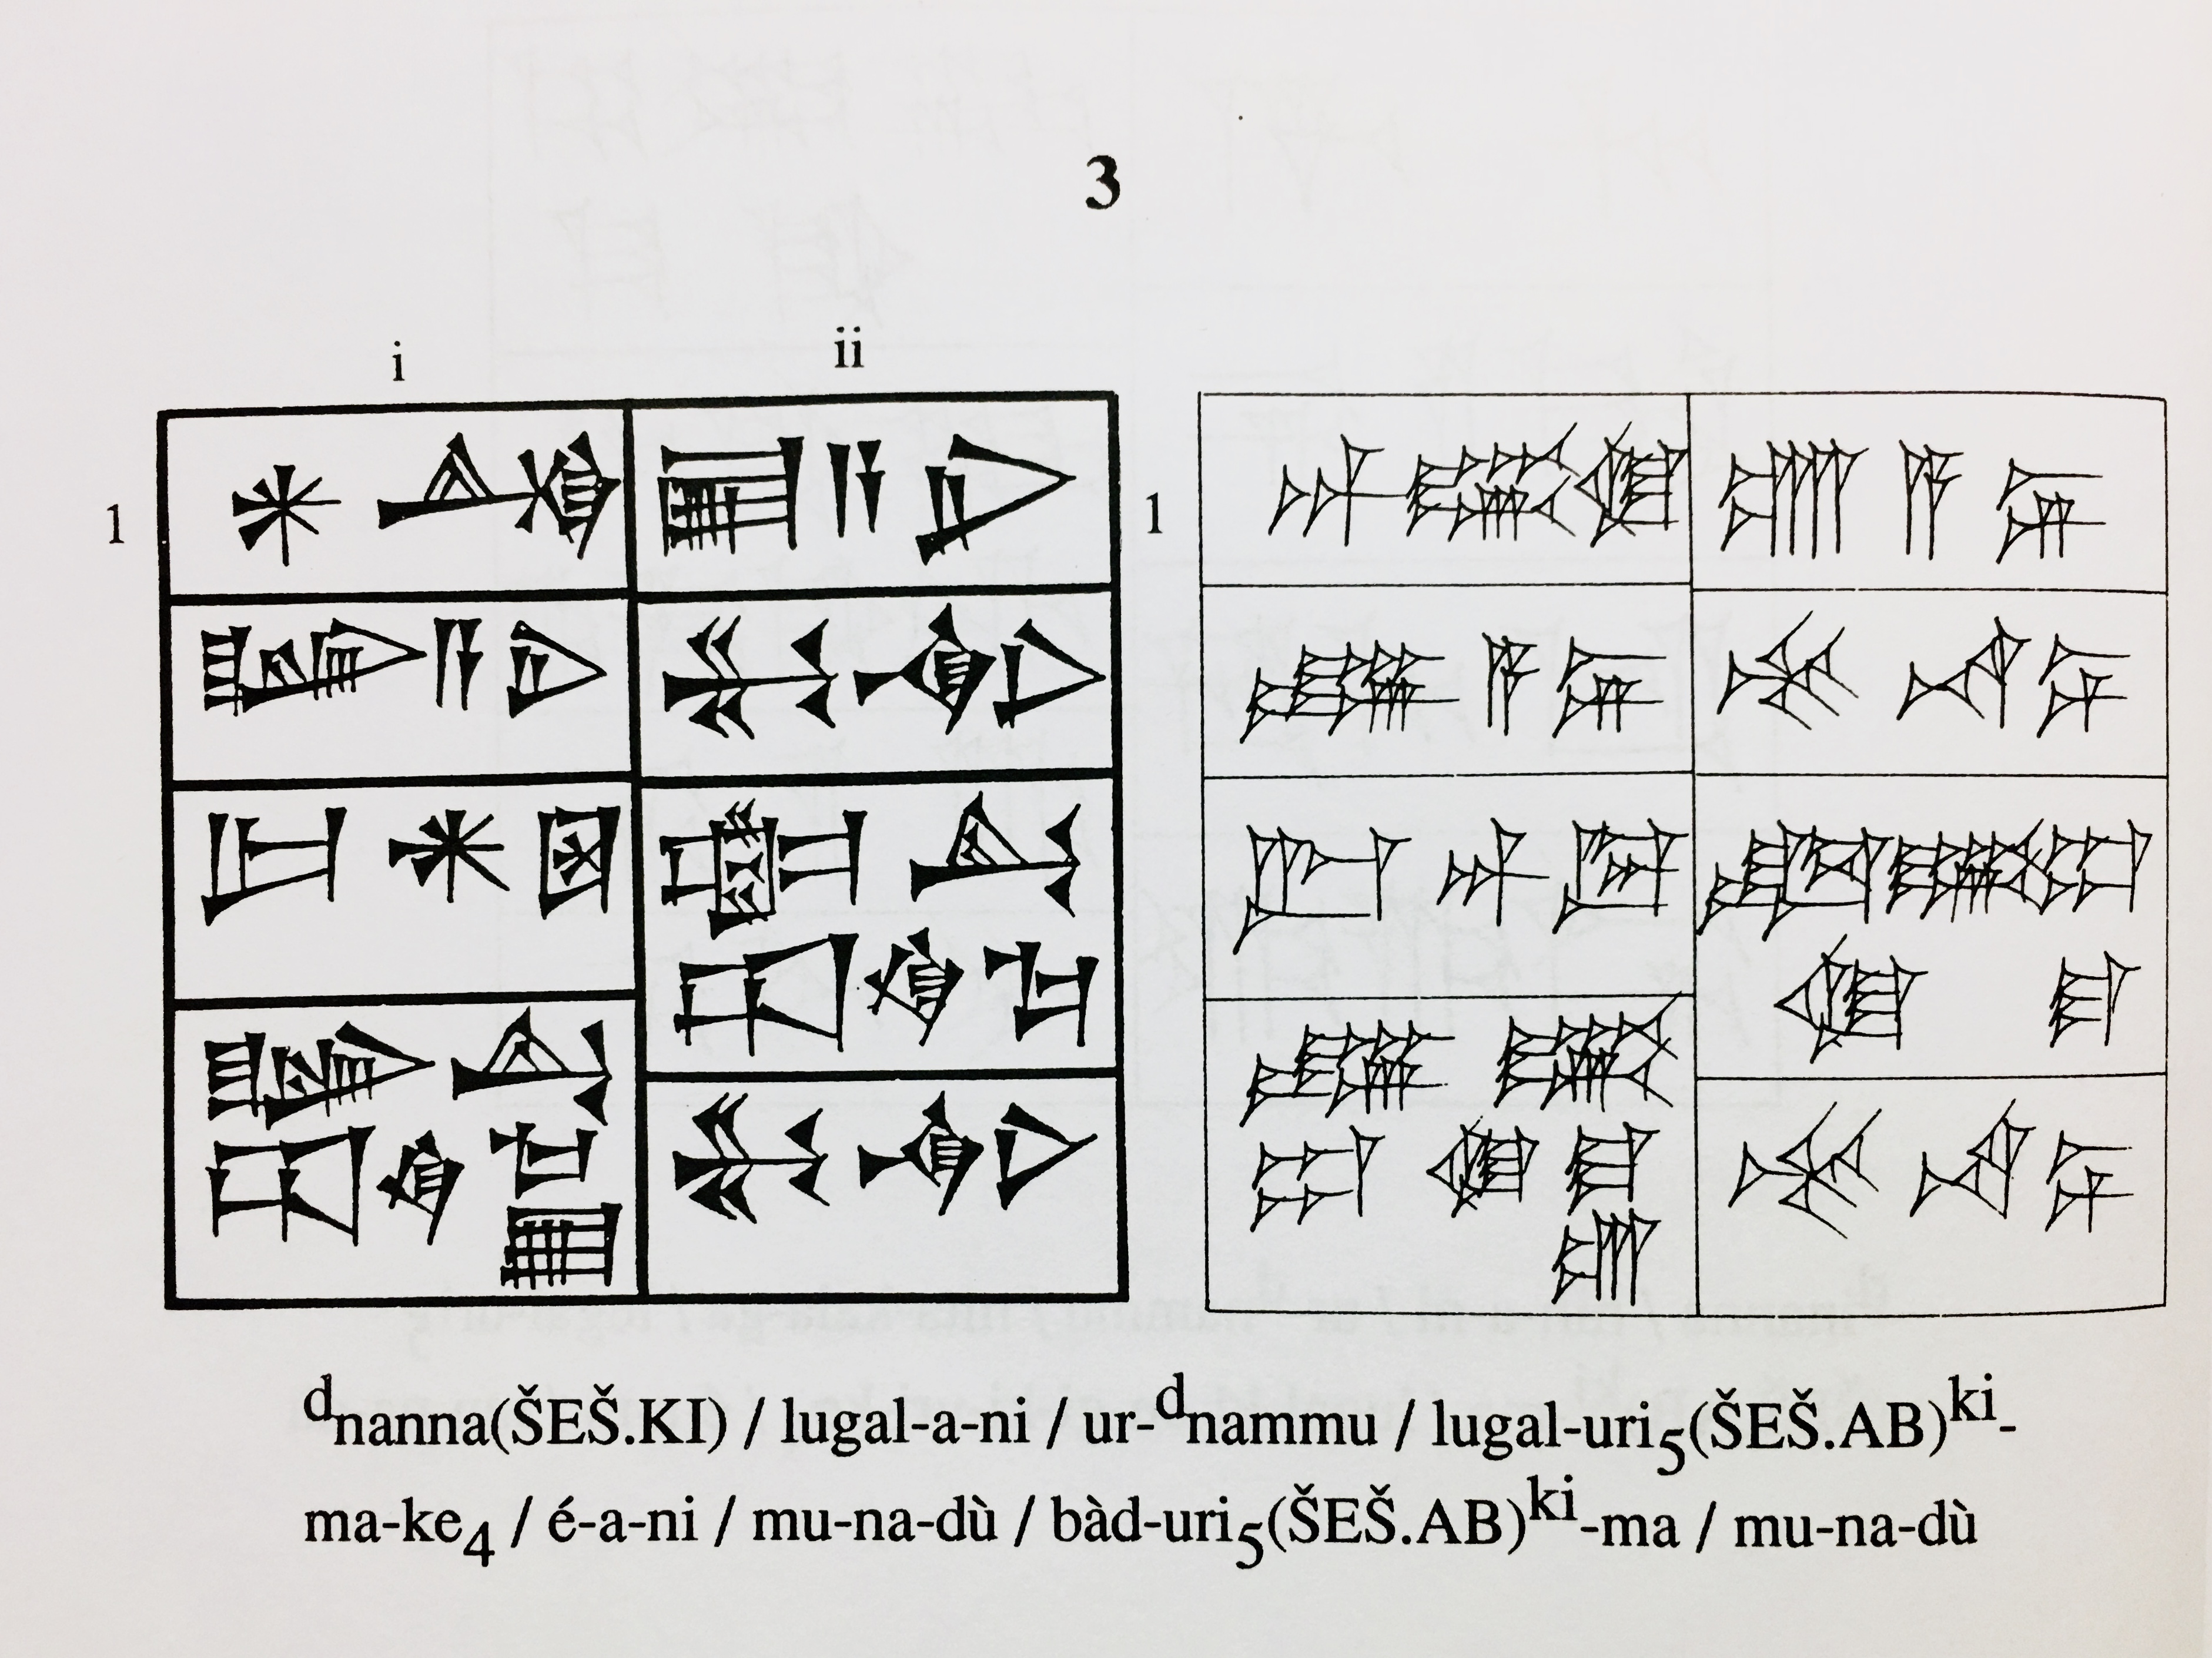 Getting Started With Sumerian